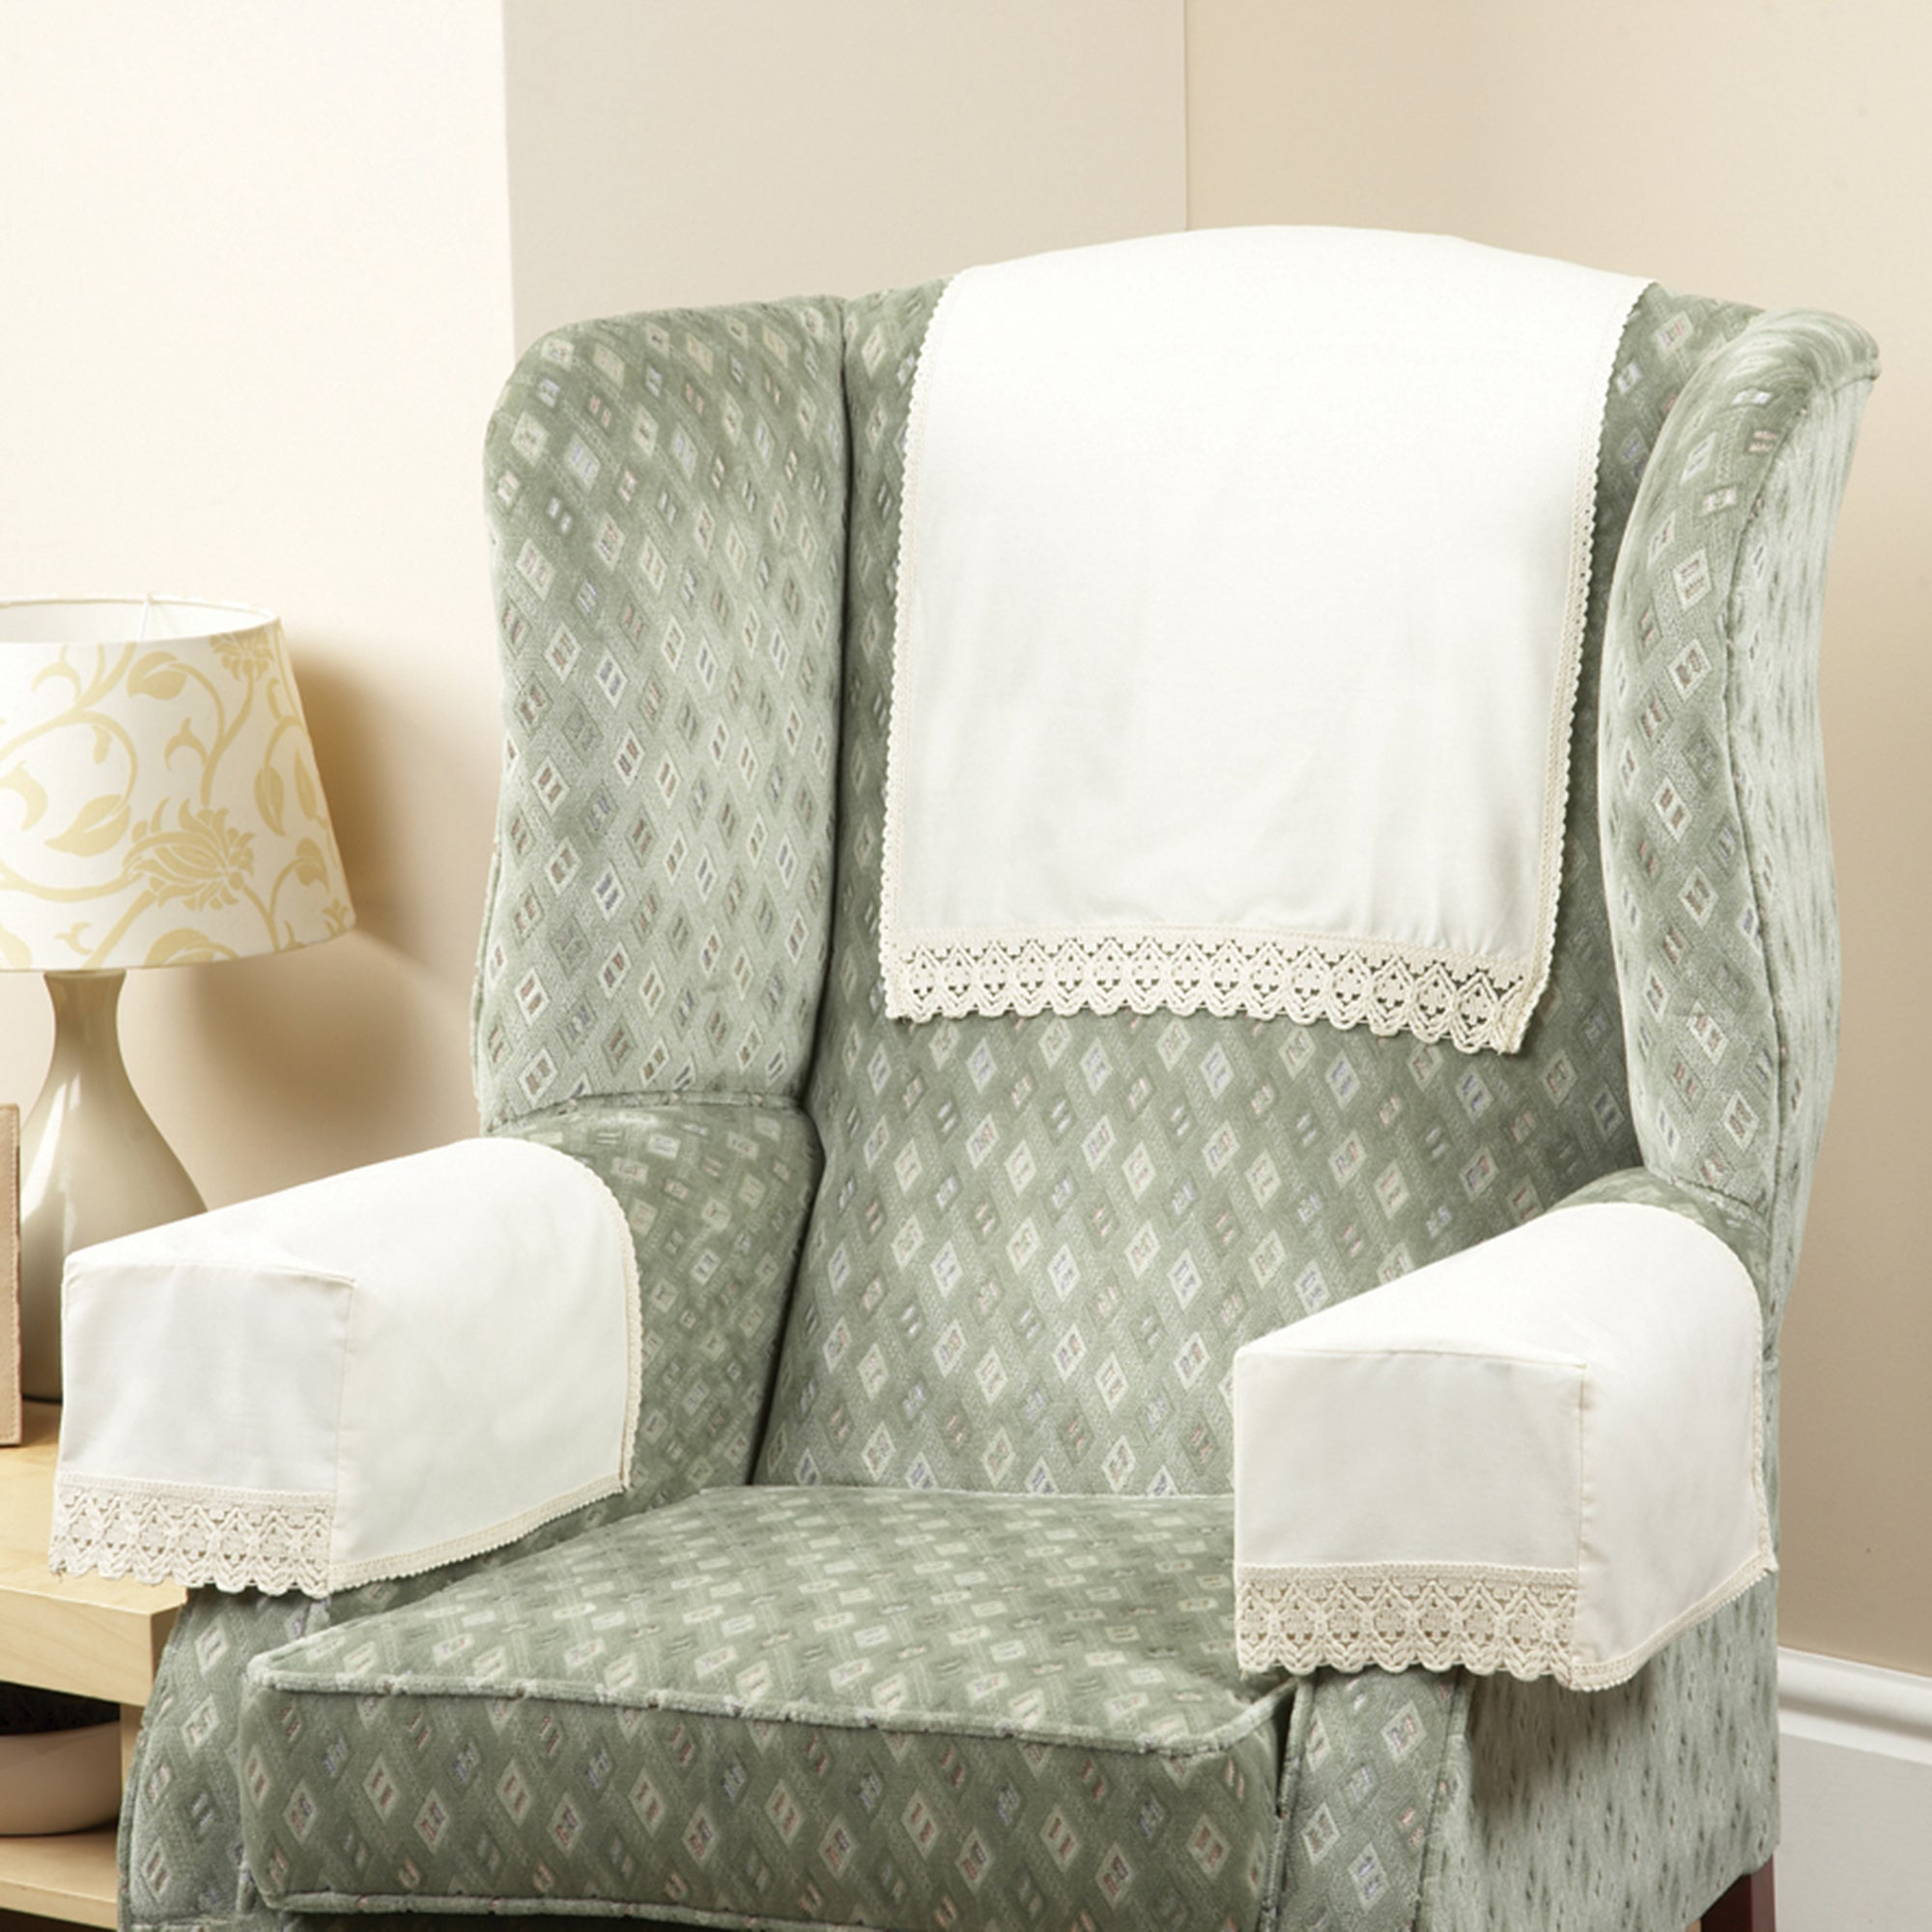 buy cheap arm chair compare products prices for best uk. Black Bedroom Furniture Sets. Home Design Ideas